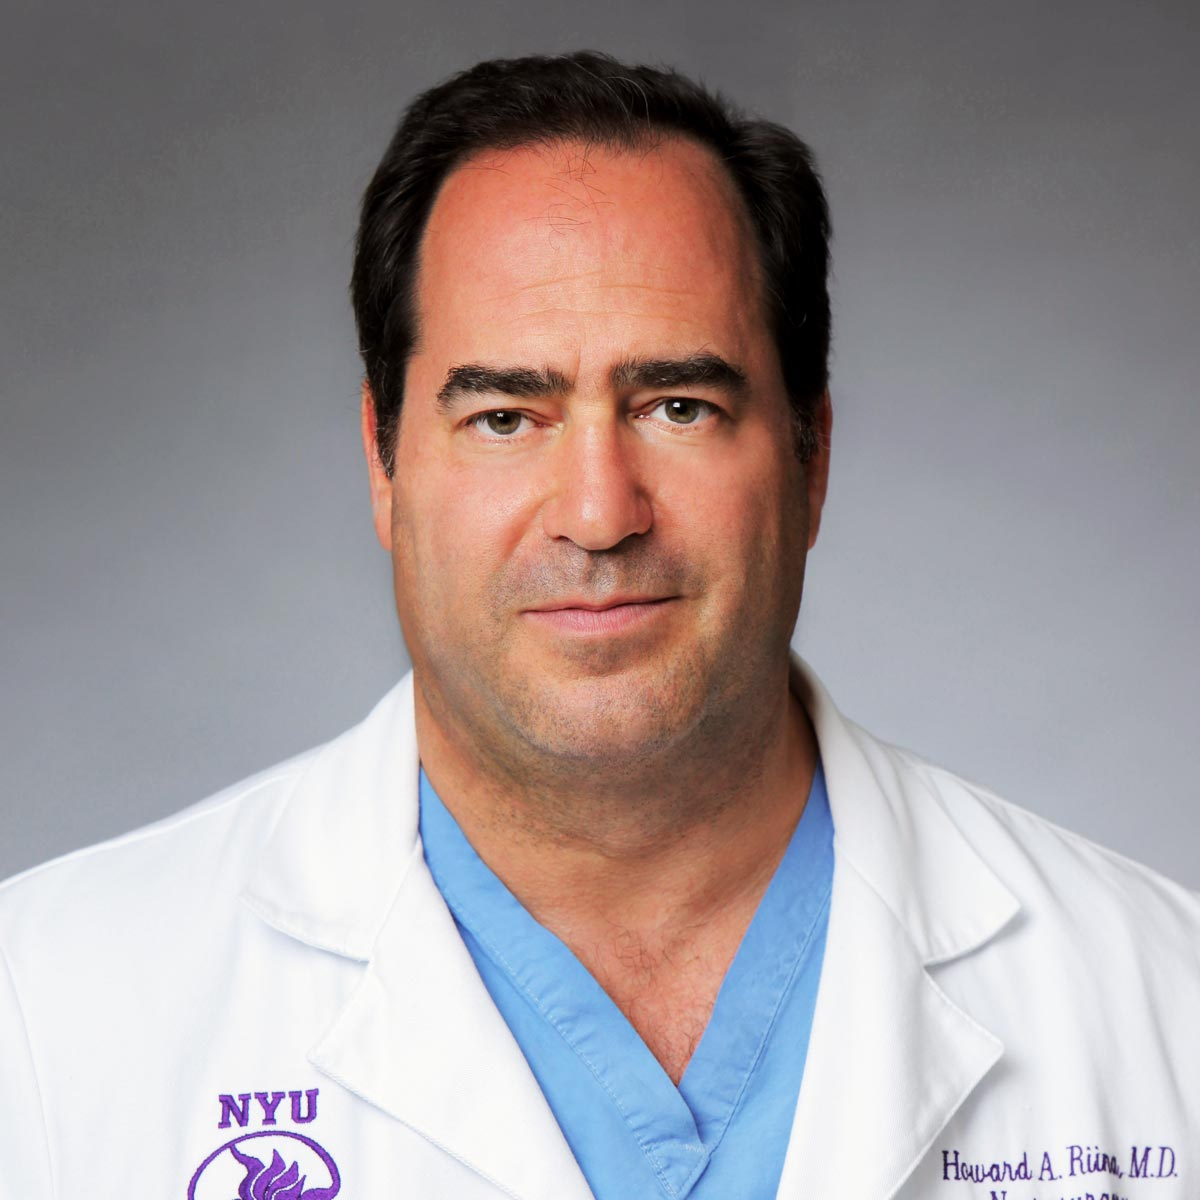 Howard Riina at [NYU Langone Medical Center]